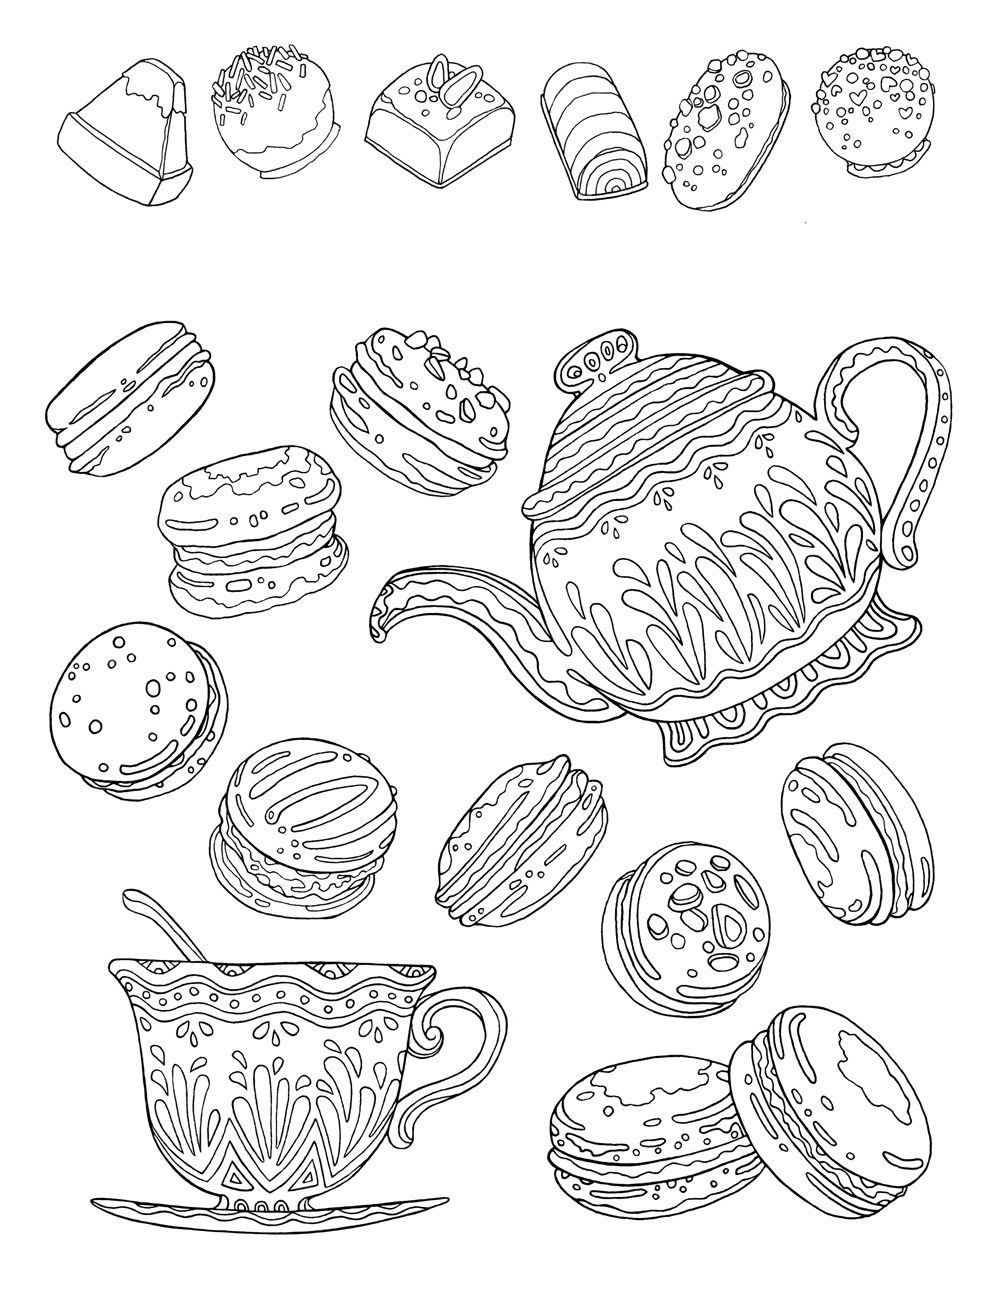 Free Printable Coloring Page For Adults, Hand Drawn 'tea